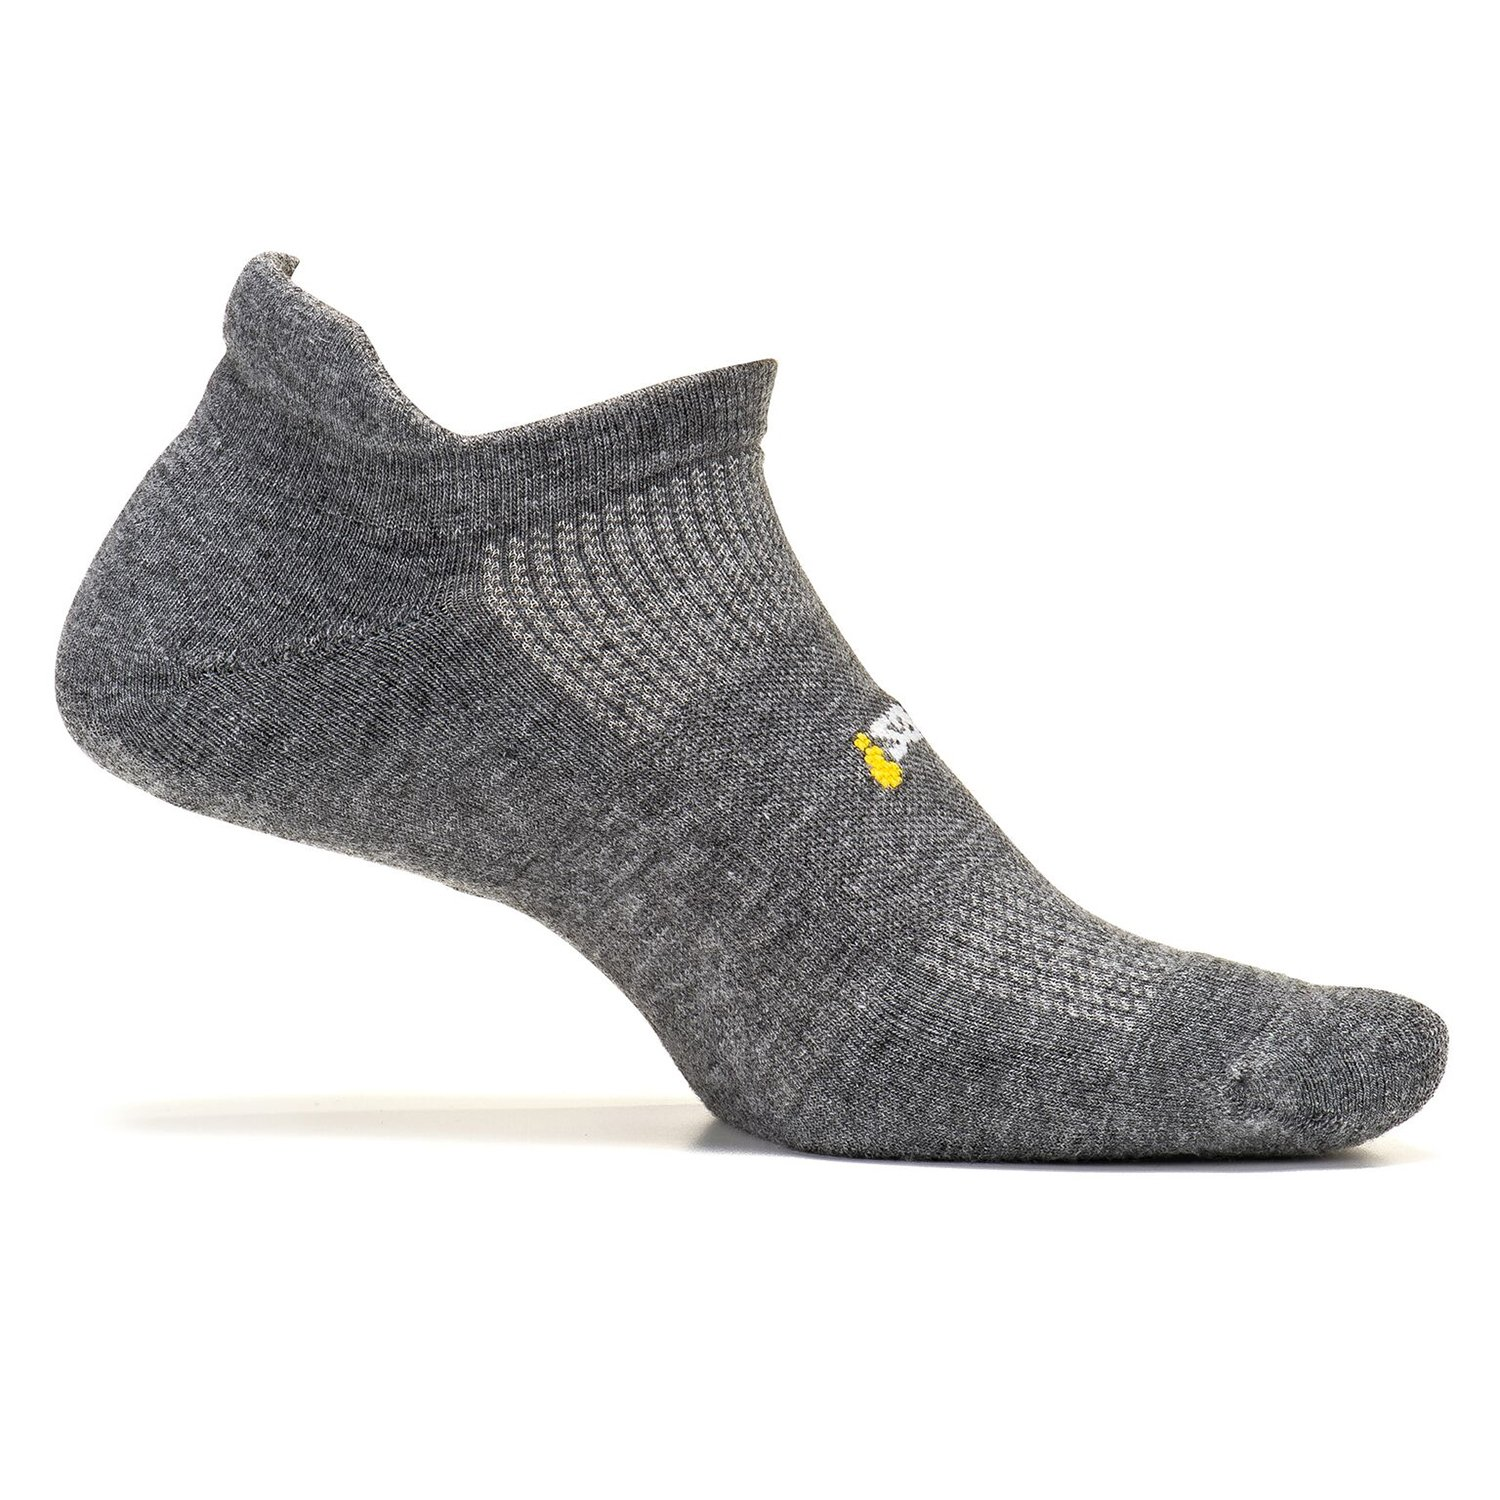 Feetures Unisex High Performance Ultra Light Cushion No Show Tab Socks,Heather Gray, Medium